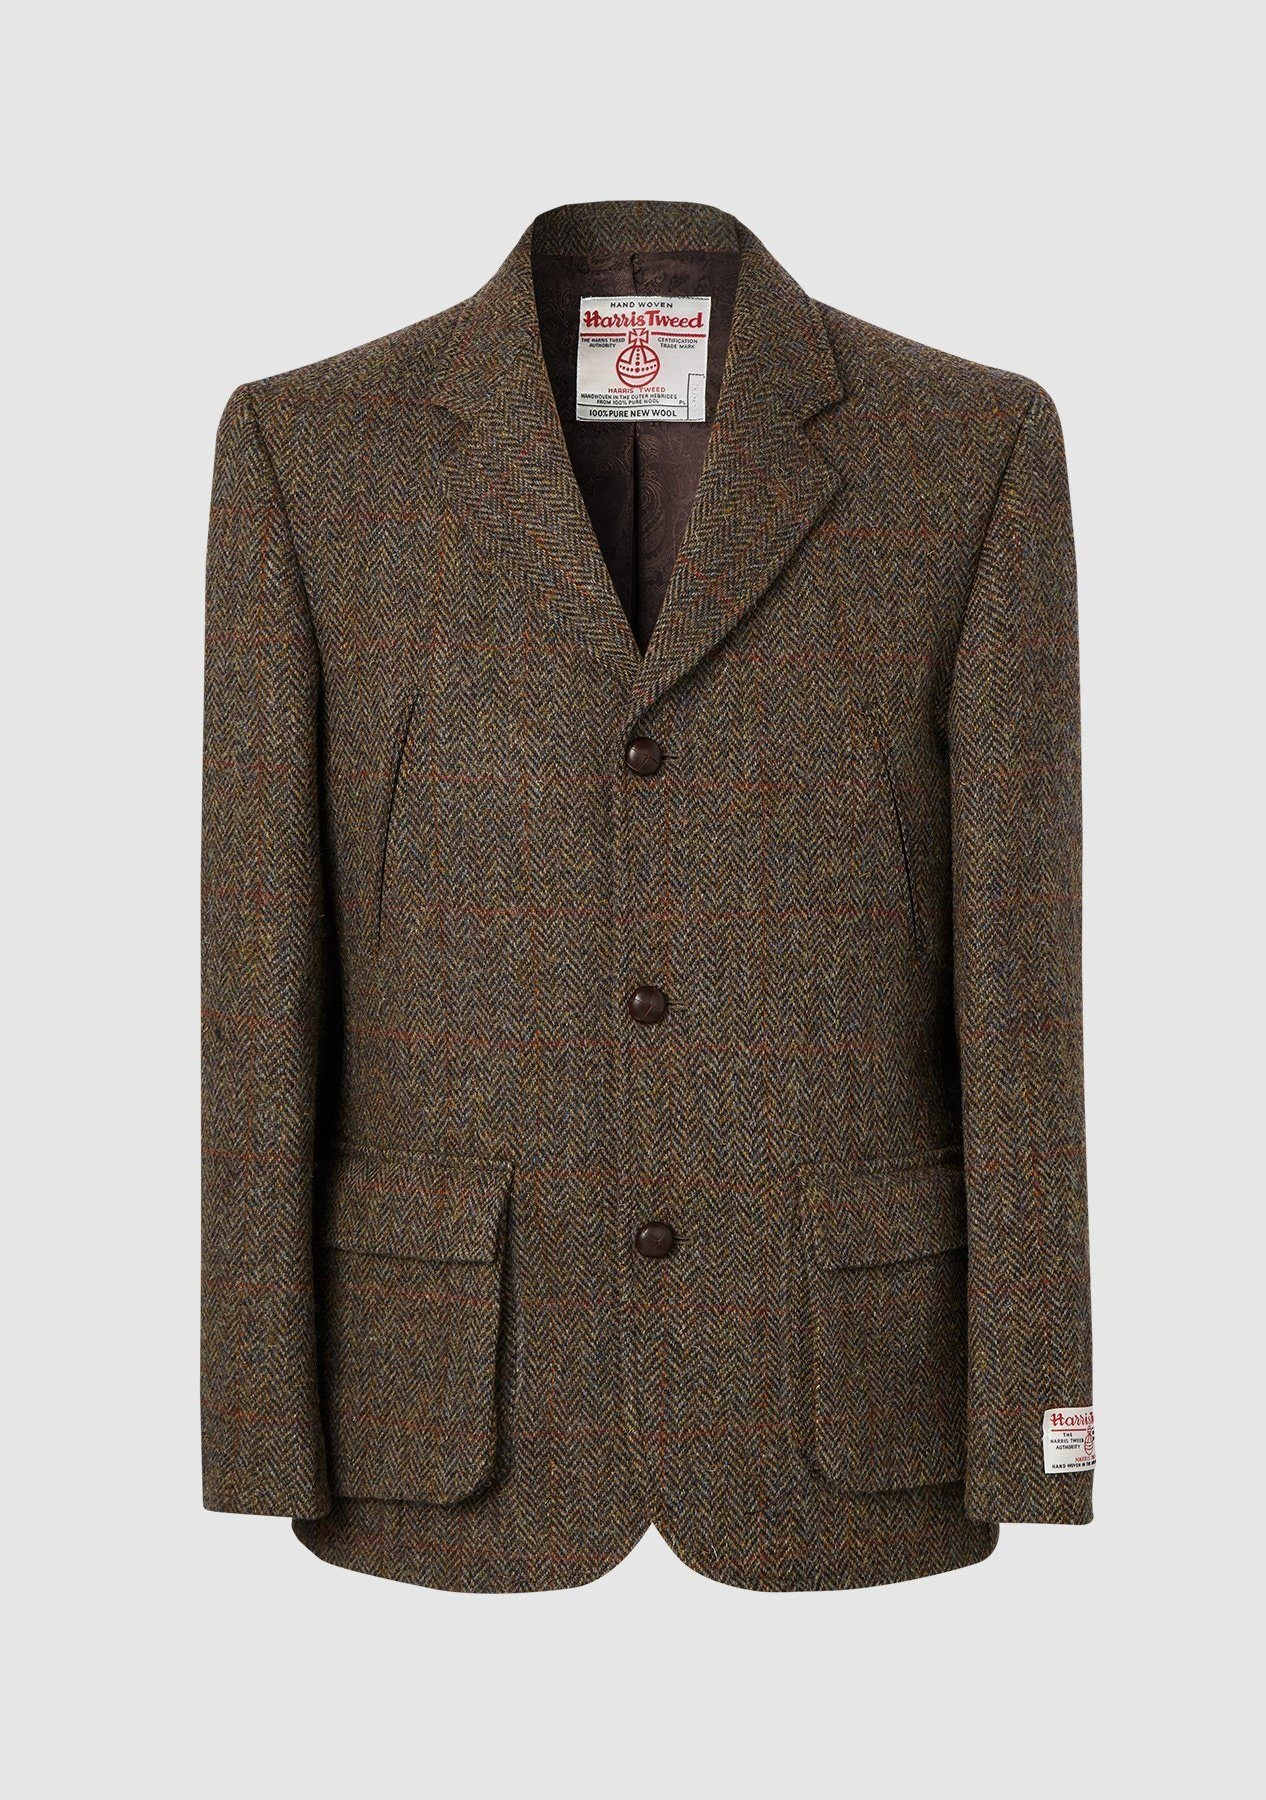 Callum Utility Jacket Harris Tweed, brown herringbone